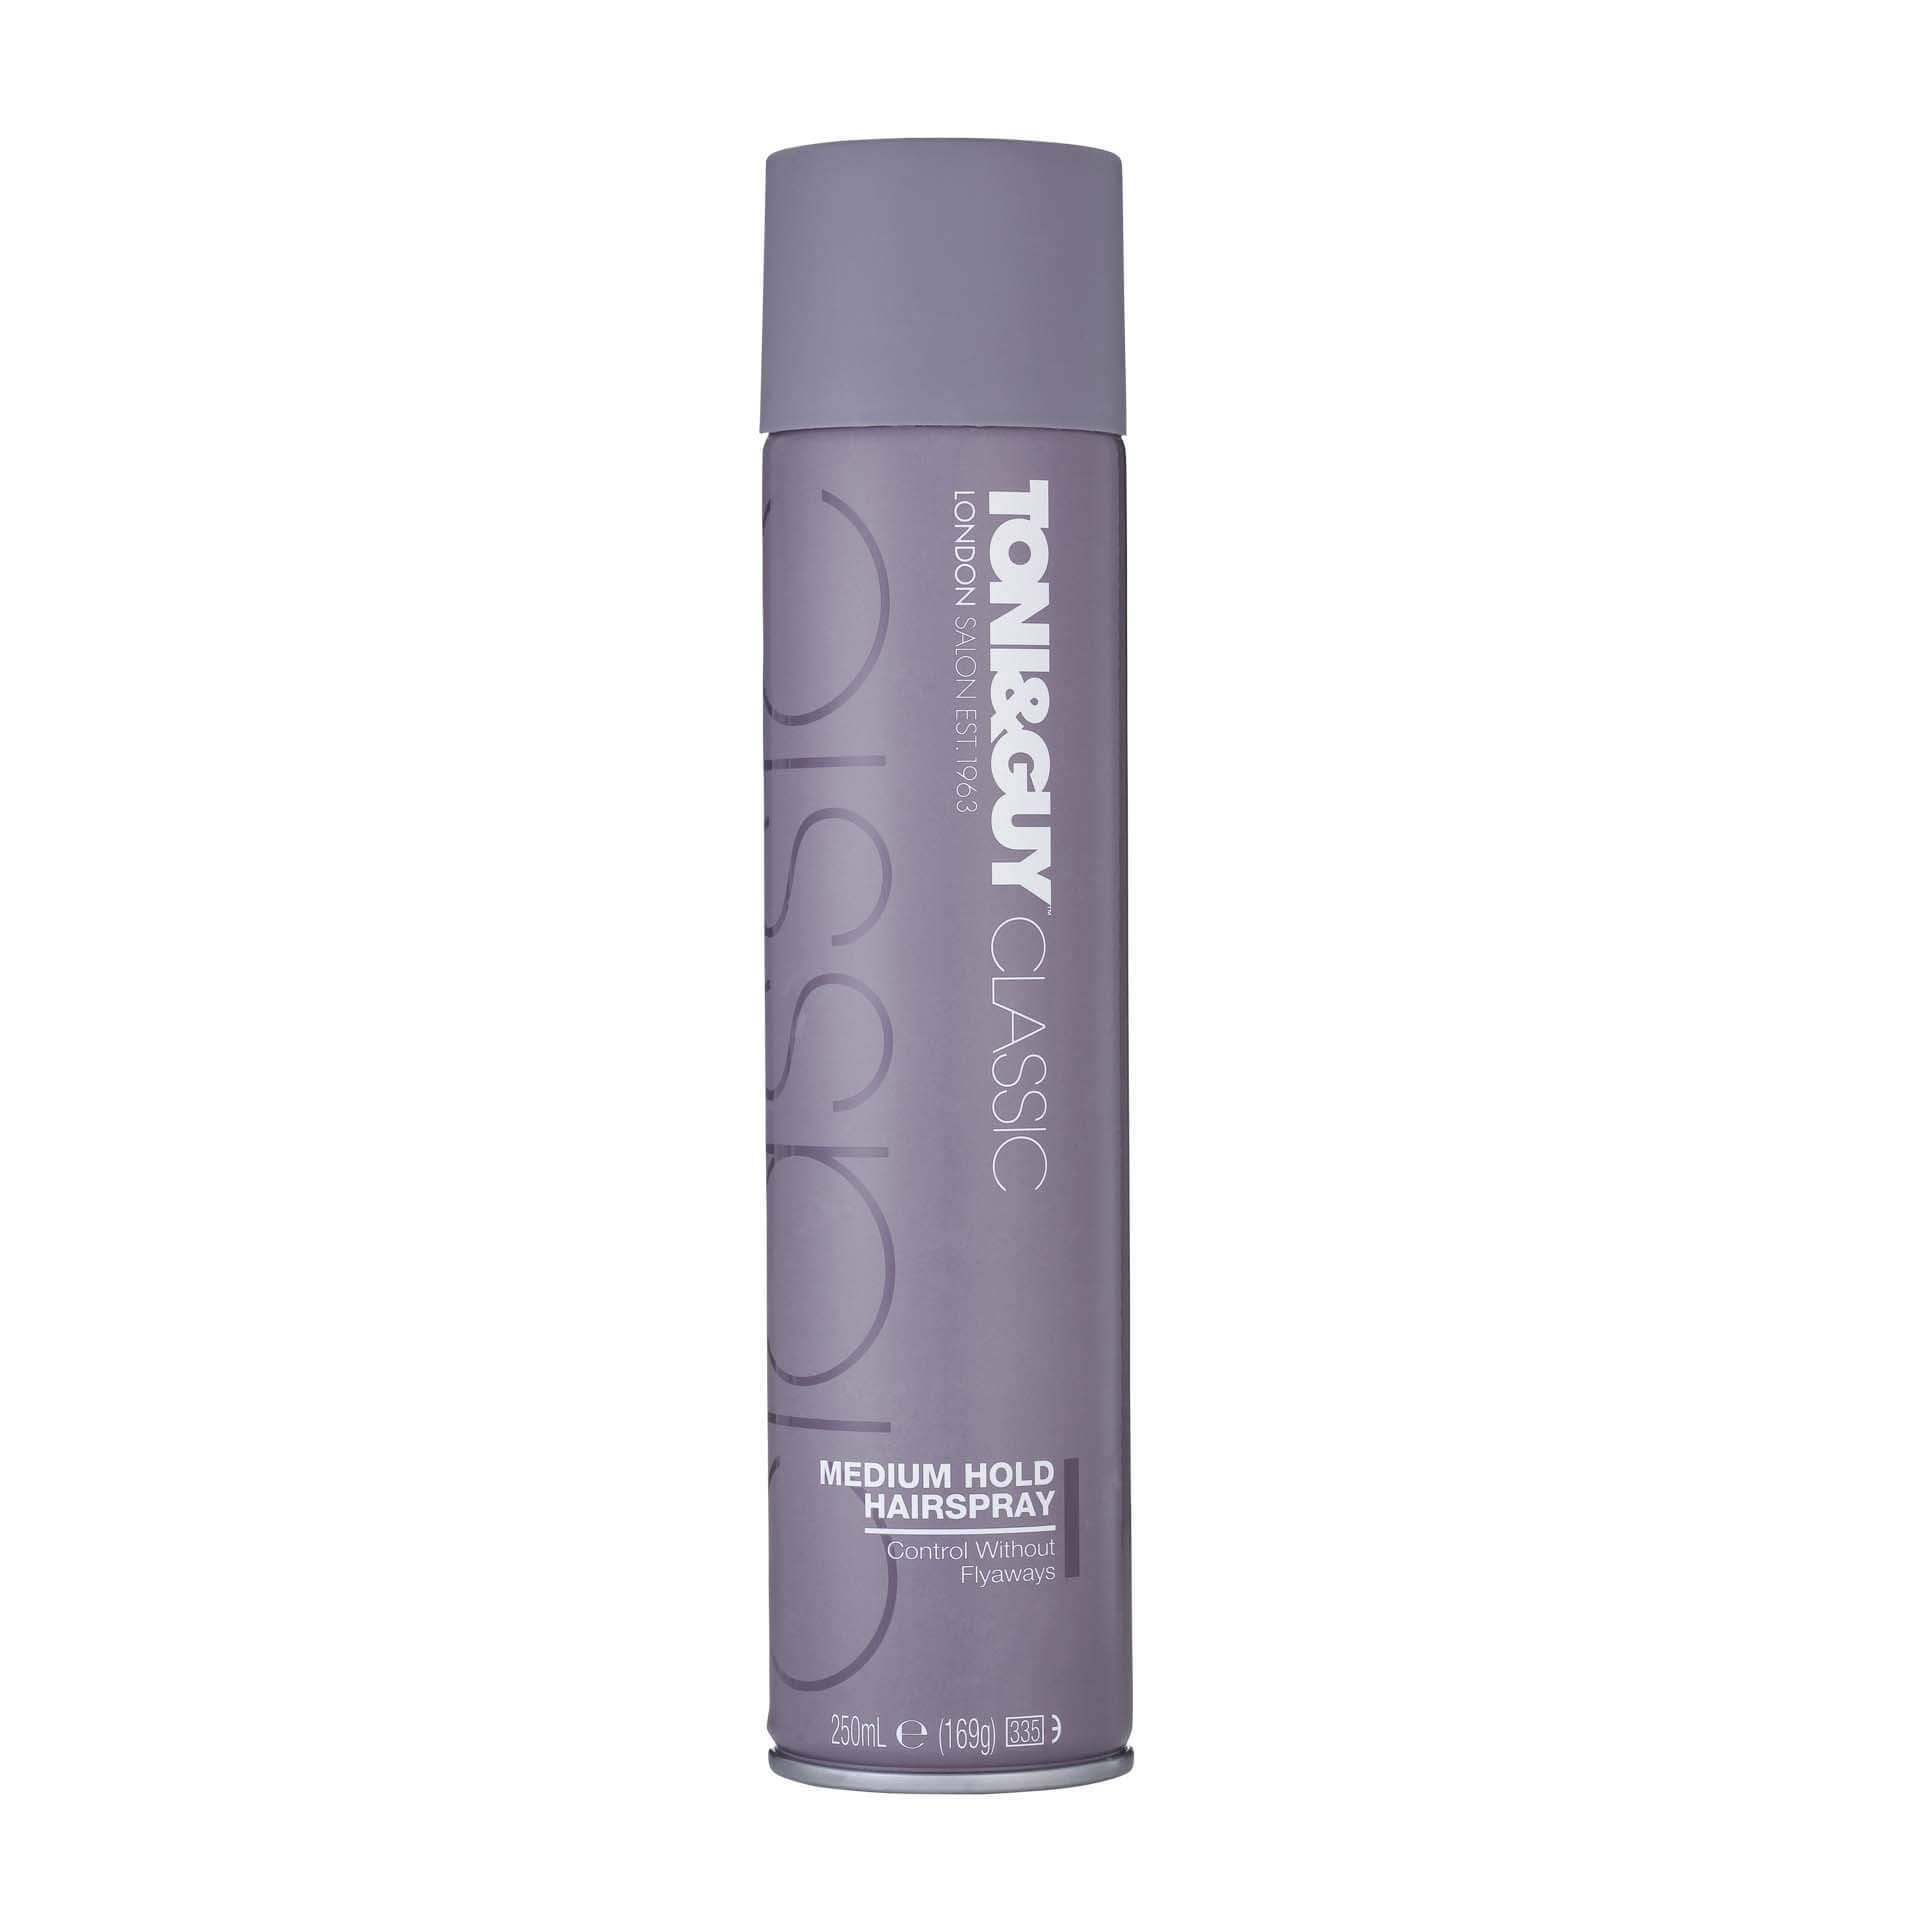 Toni & Guy classic medium hold hairspray